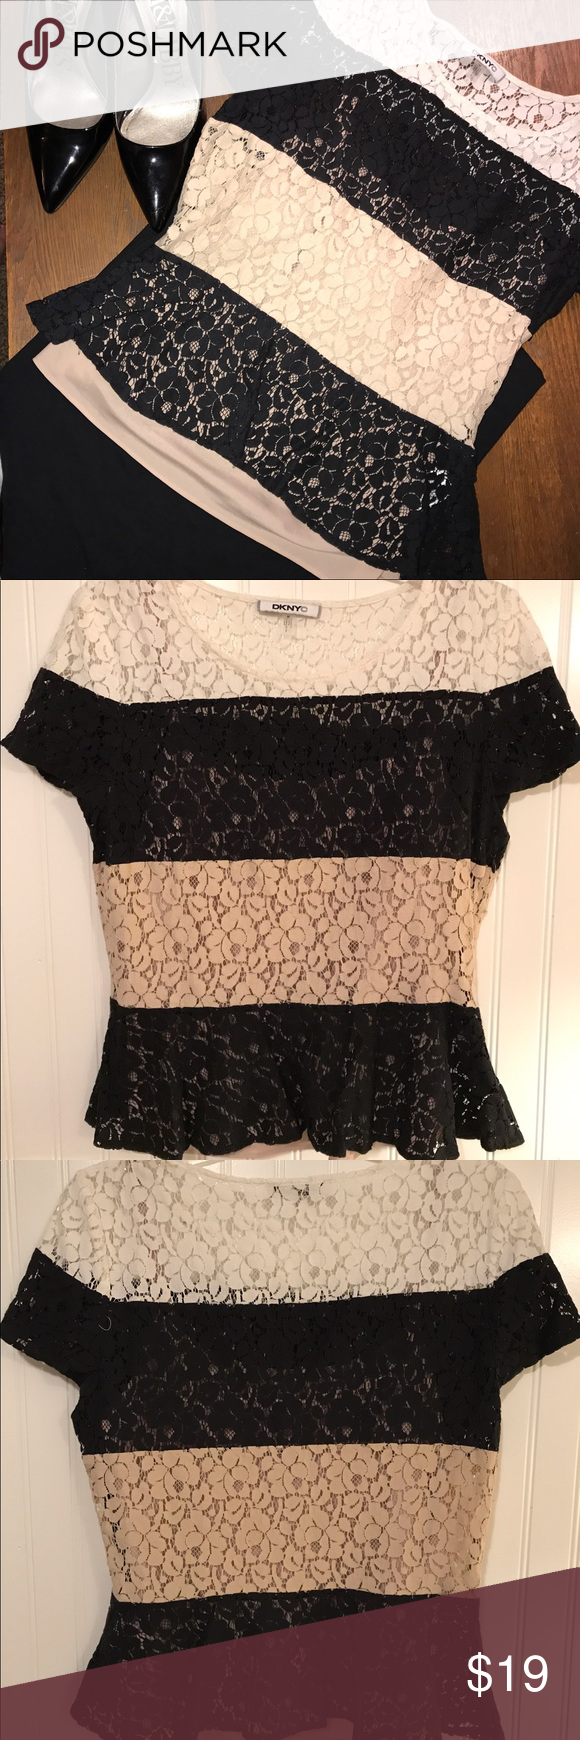 Lace color block DKNY blouse Like new condition! Has a buff colored tank top sewn in to shirt 💗 Dkny Tops